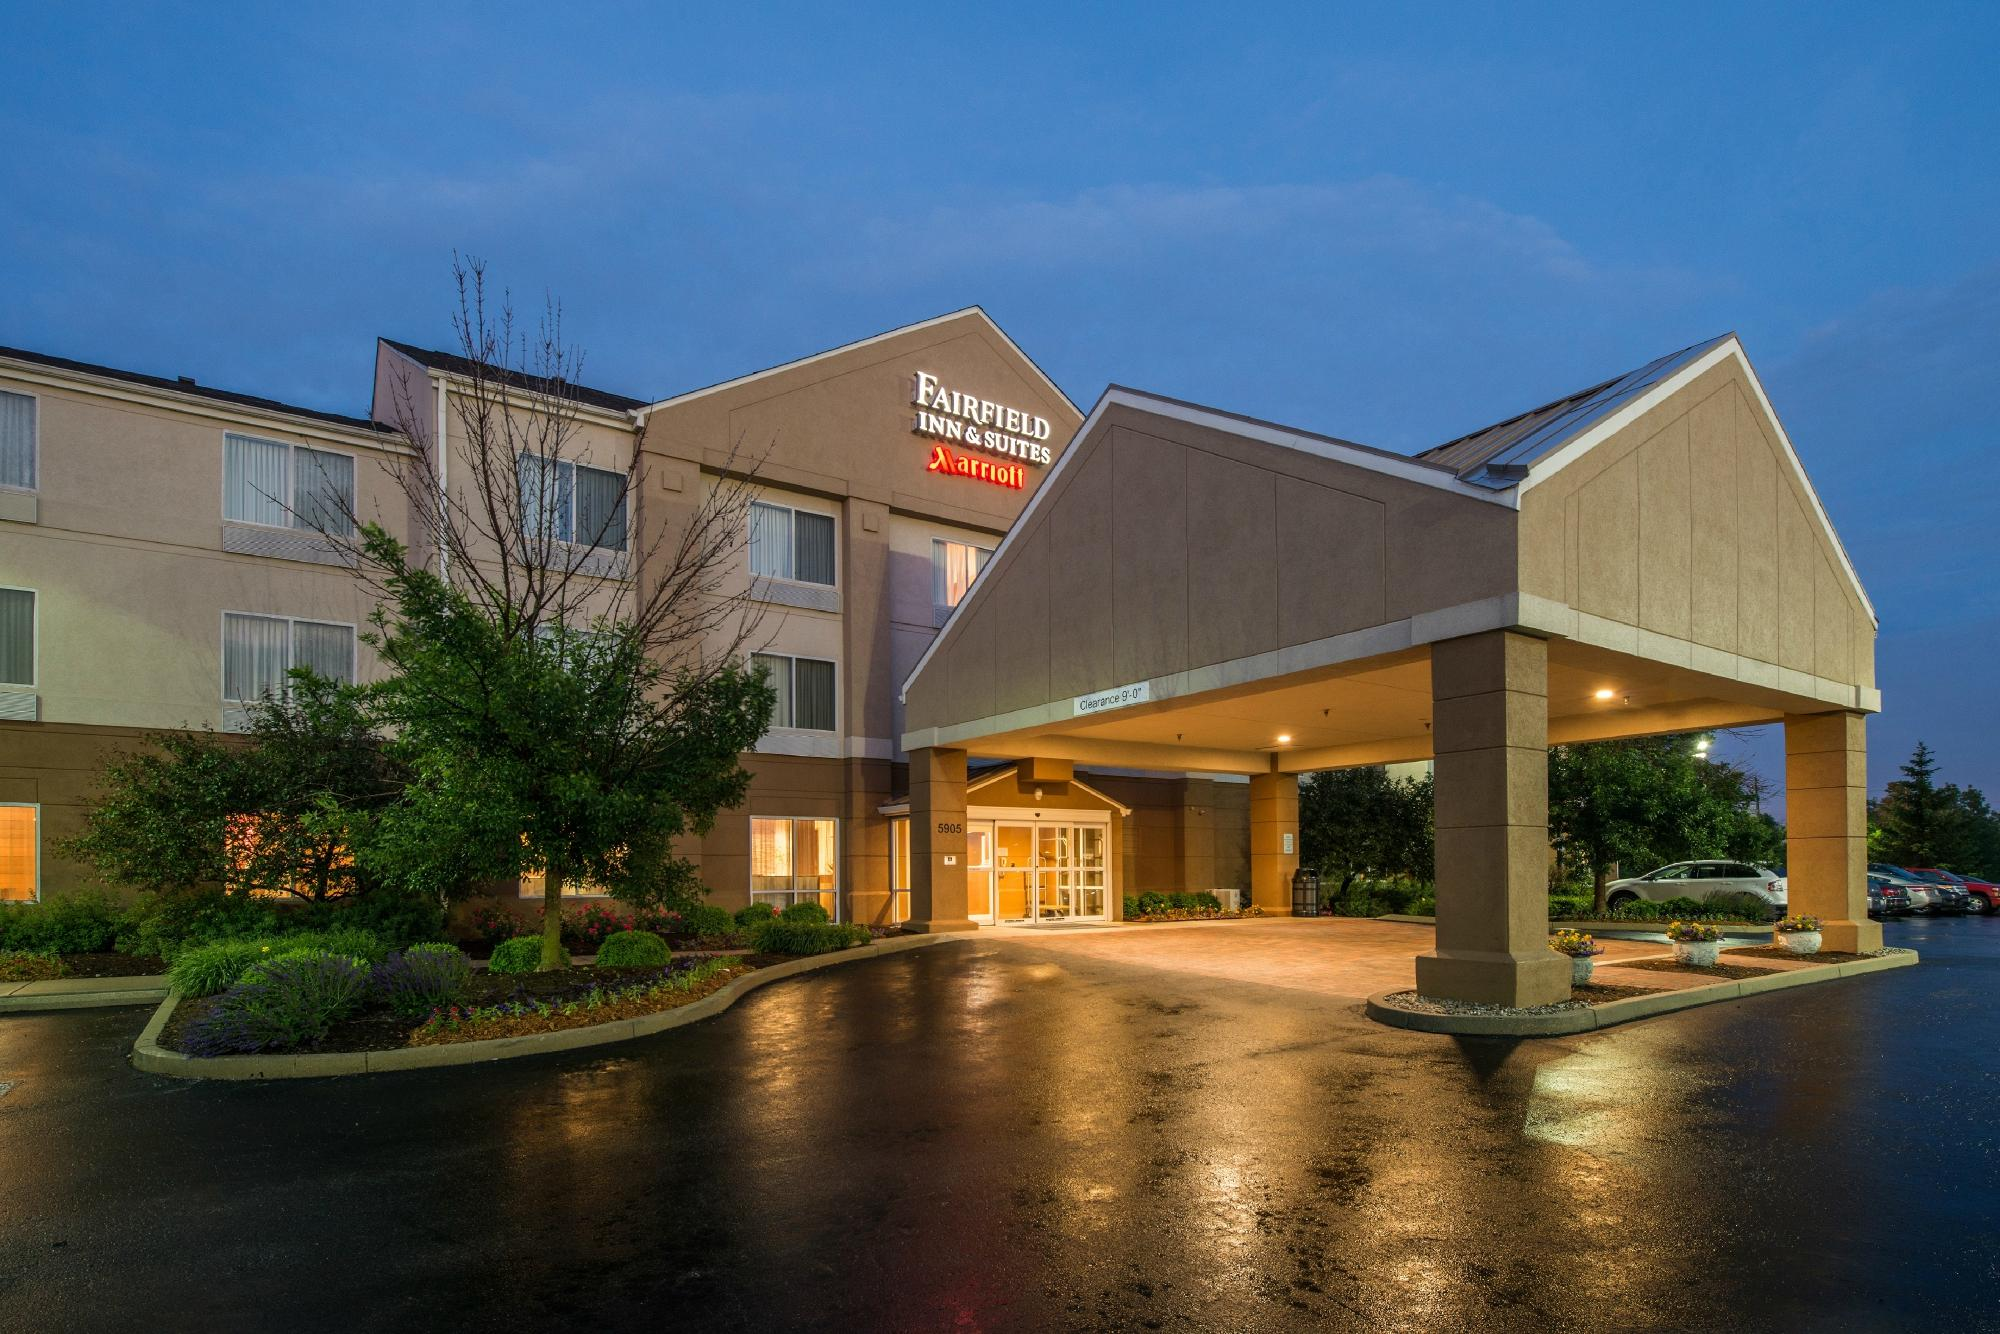 Fairfield Inn & Suites Indianapolis Northwest